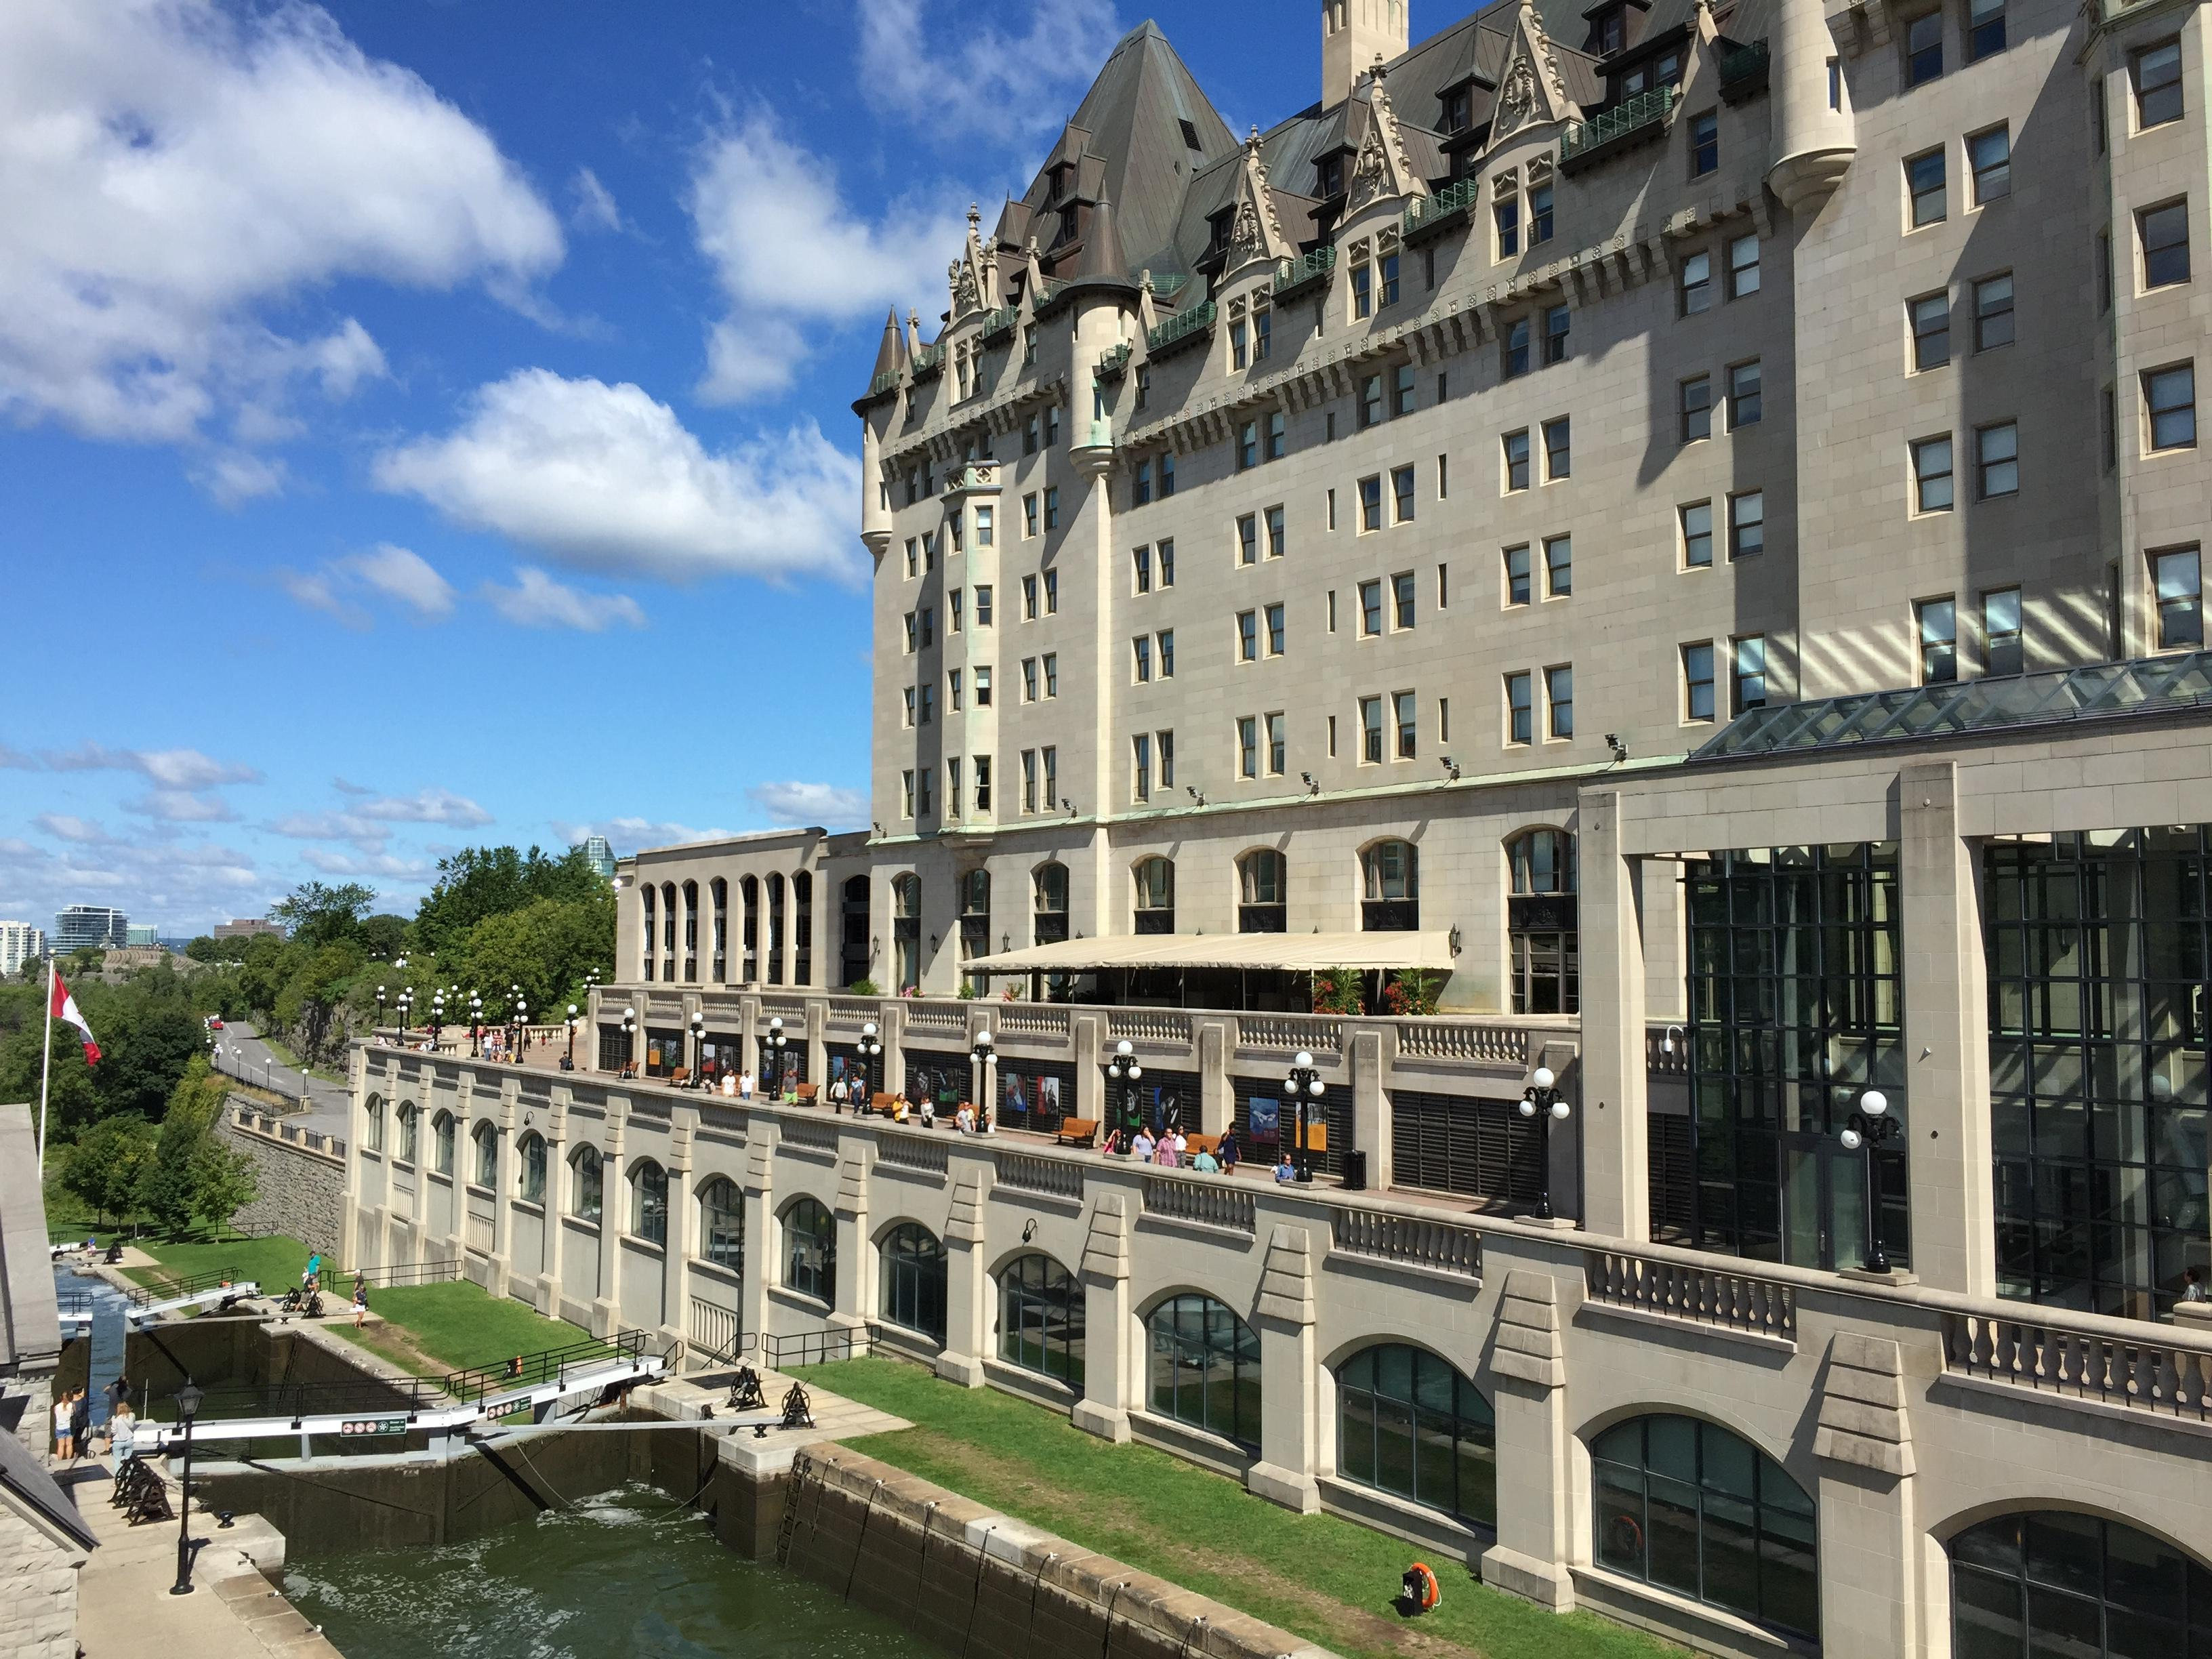 Exterior of hotel next to Rideau Canal.